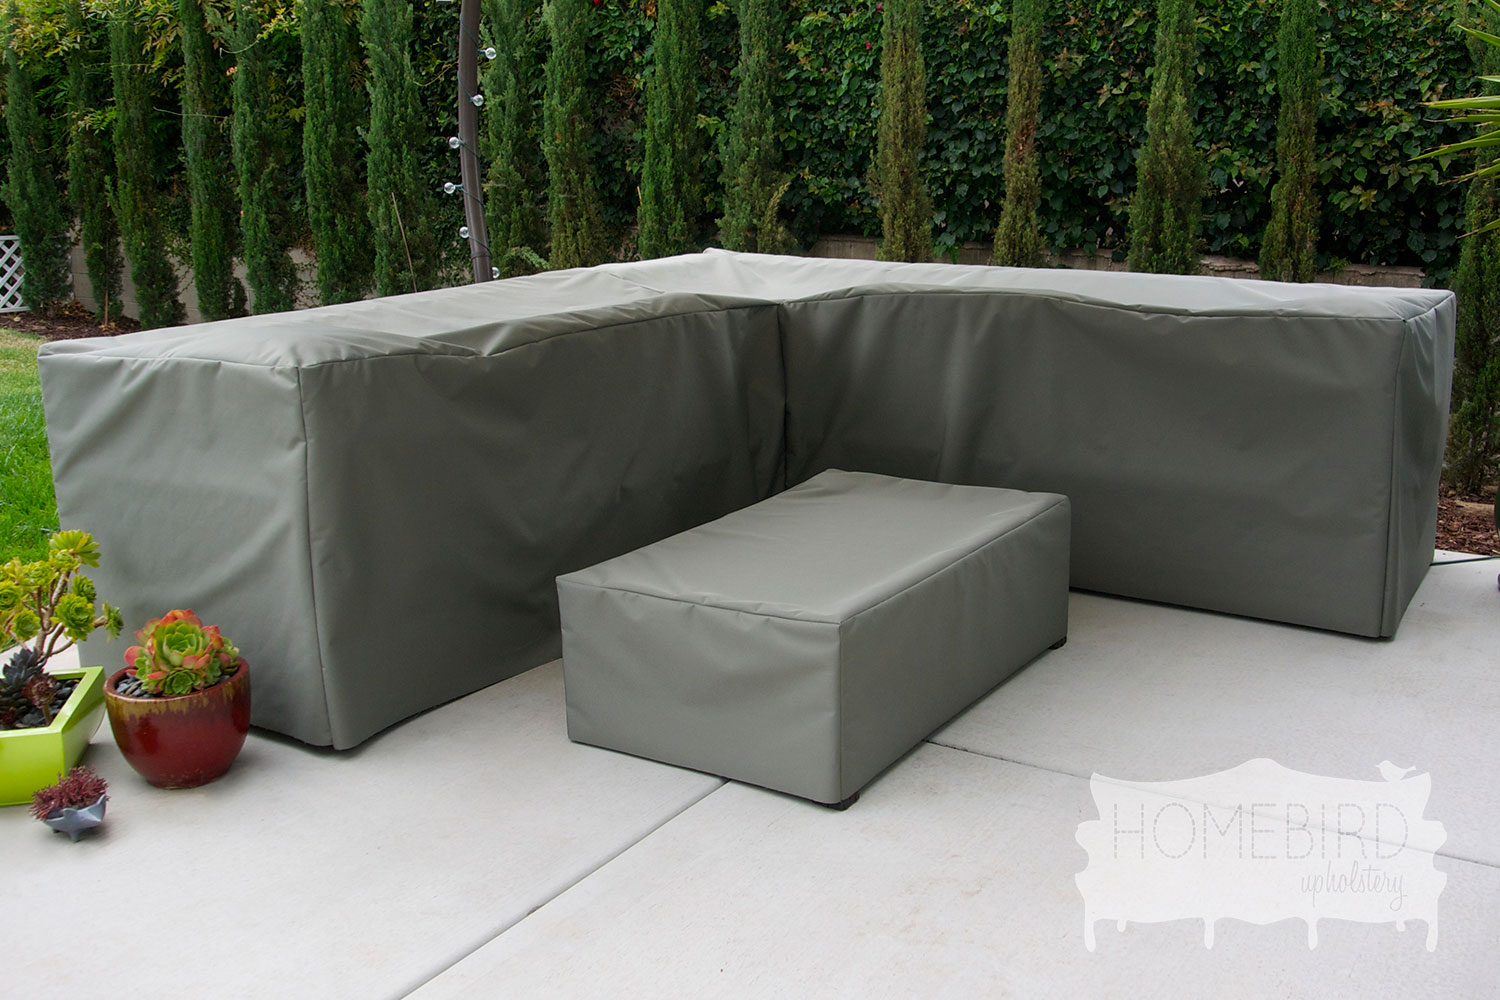 Backyard Furniture Covers : Custom Patio Furniture Covers And Outdoor Furniture Covers  Review